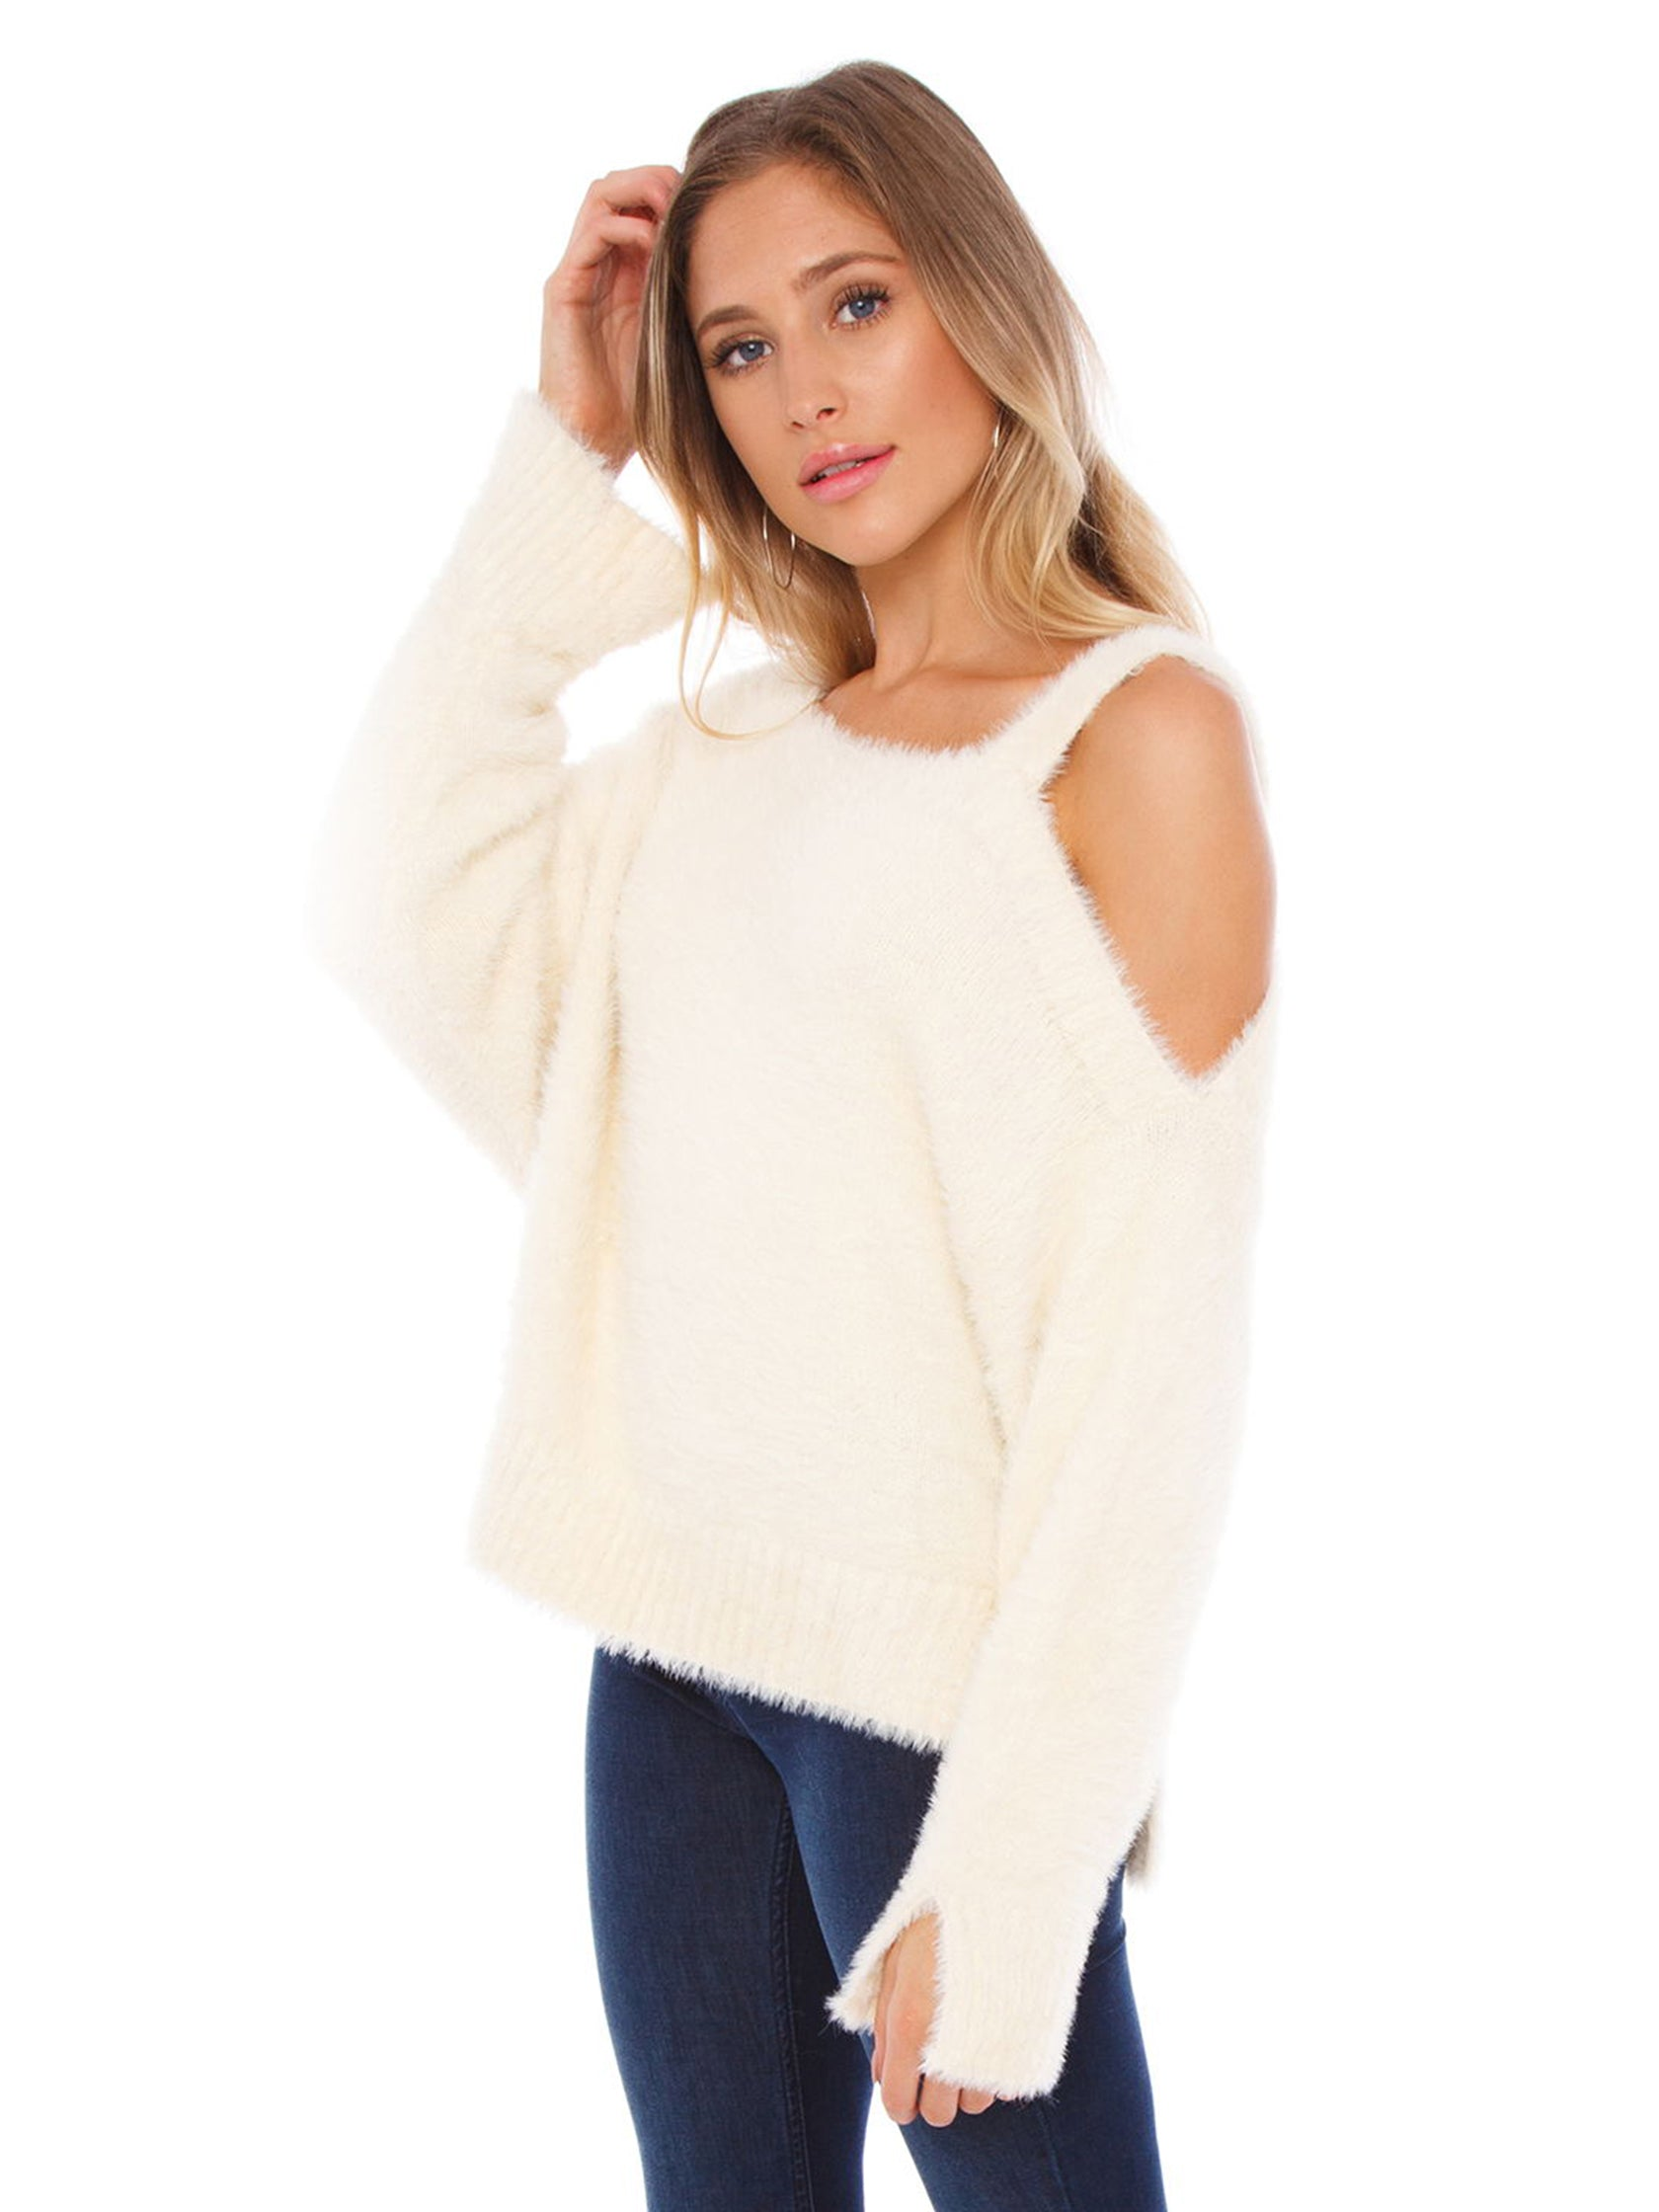 Women wearing a sweater rental from FashionPass called Amy Cold Shoulder Sweater